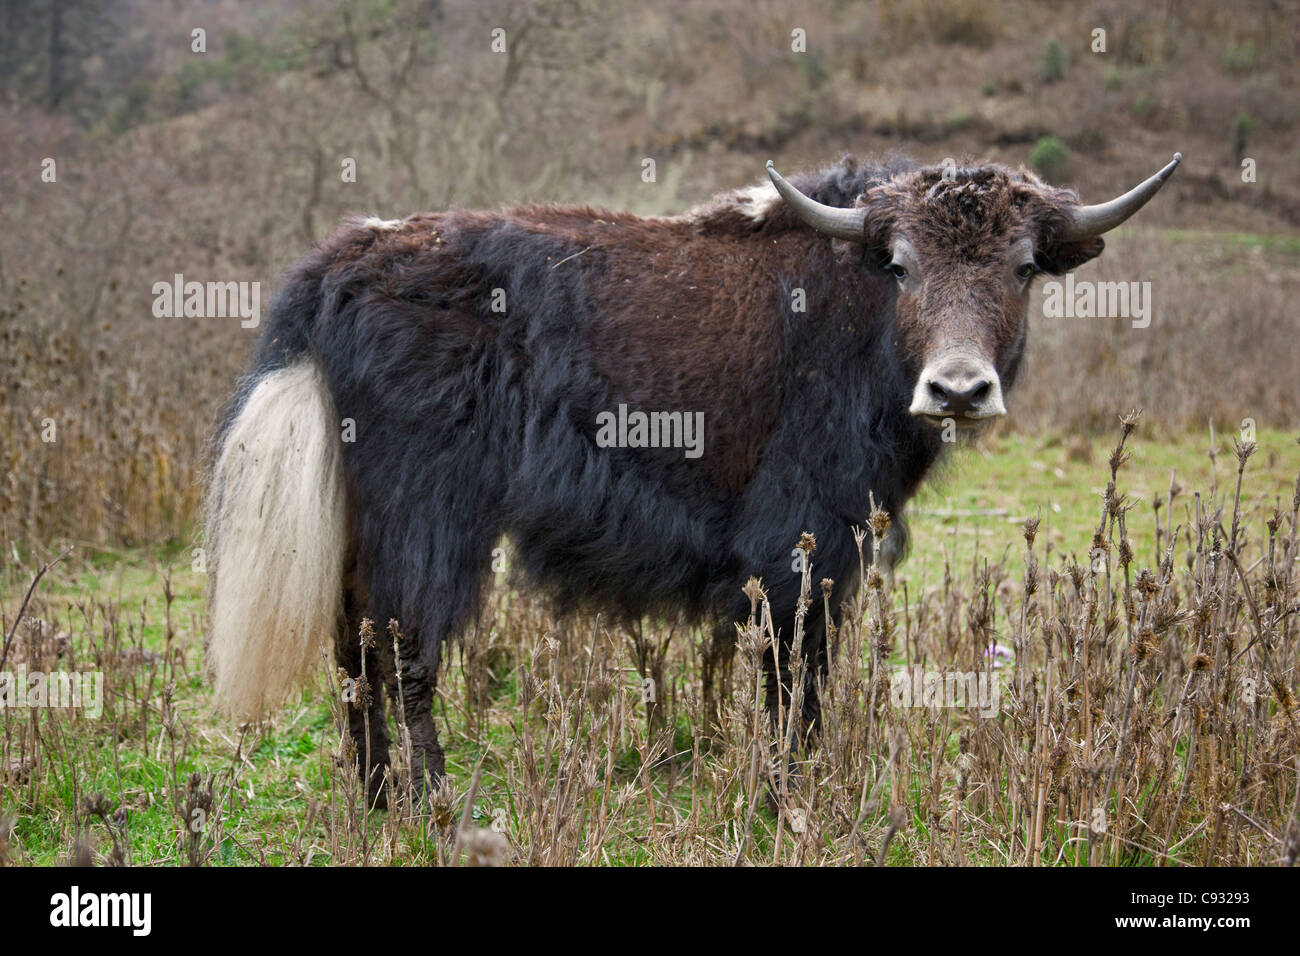 A domesticated yak in the mountains above the Phobjikha Valley. - Stock Image